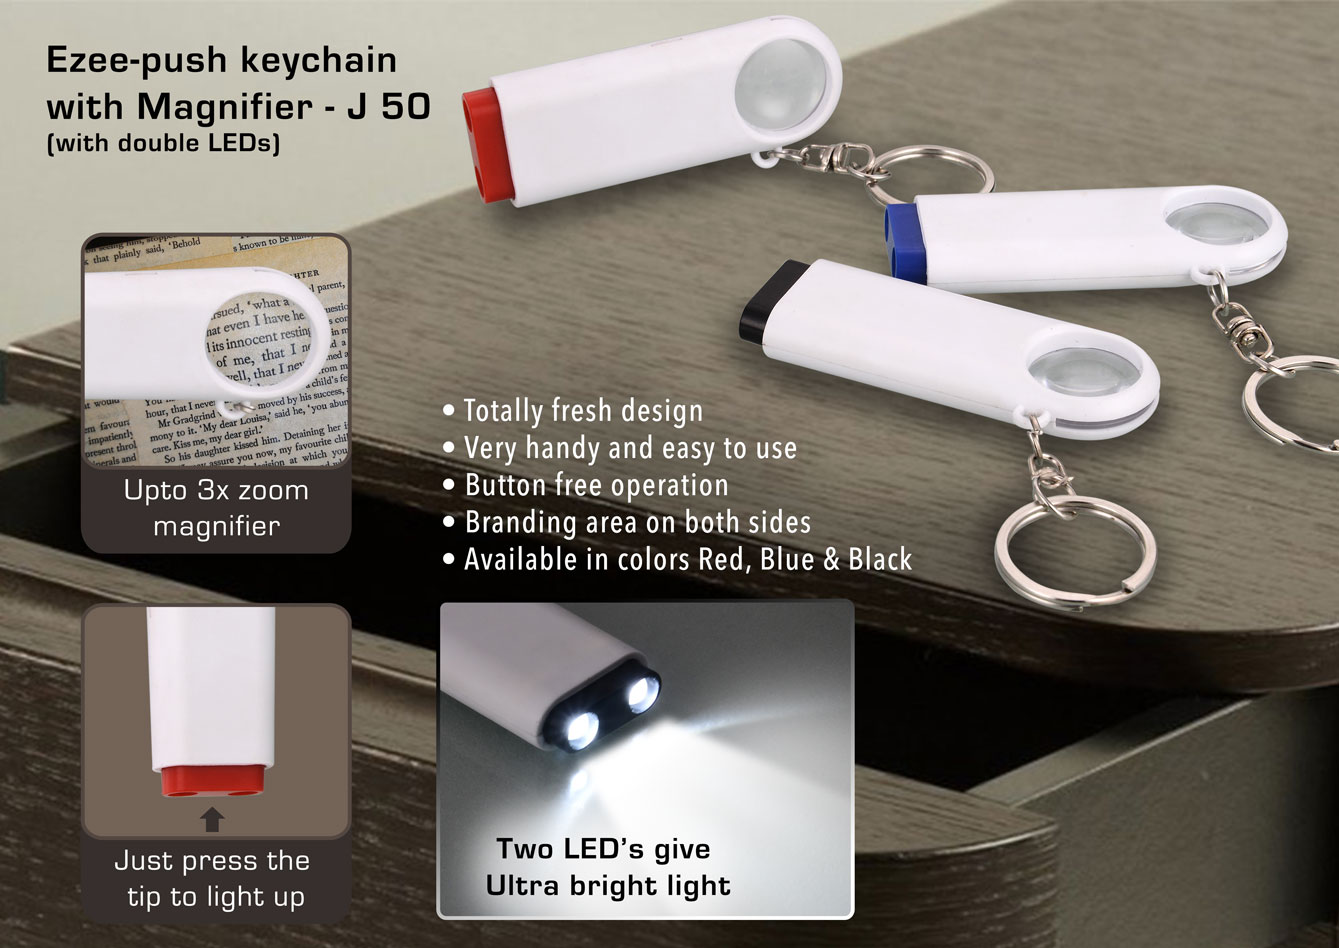 J50 - Double LED Ezee push keychain with Magnifier